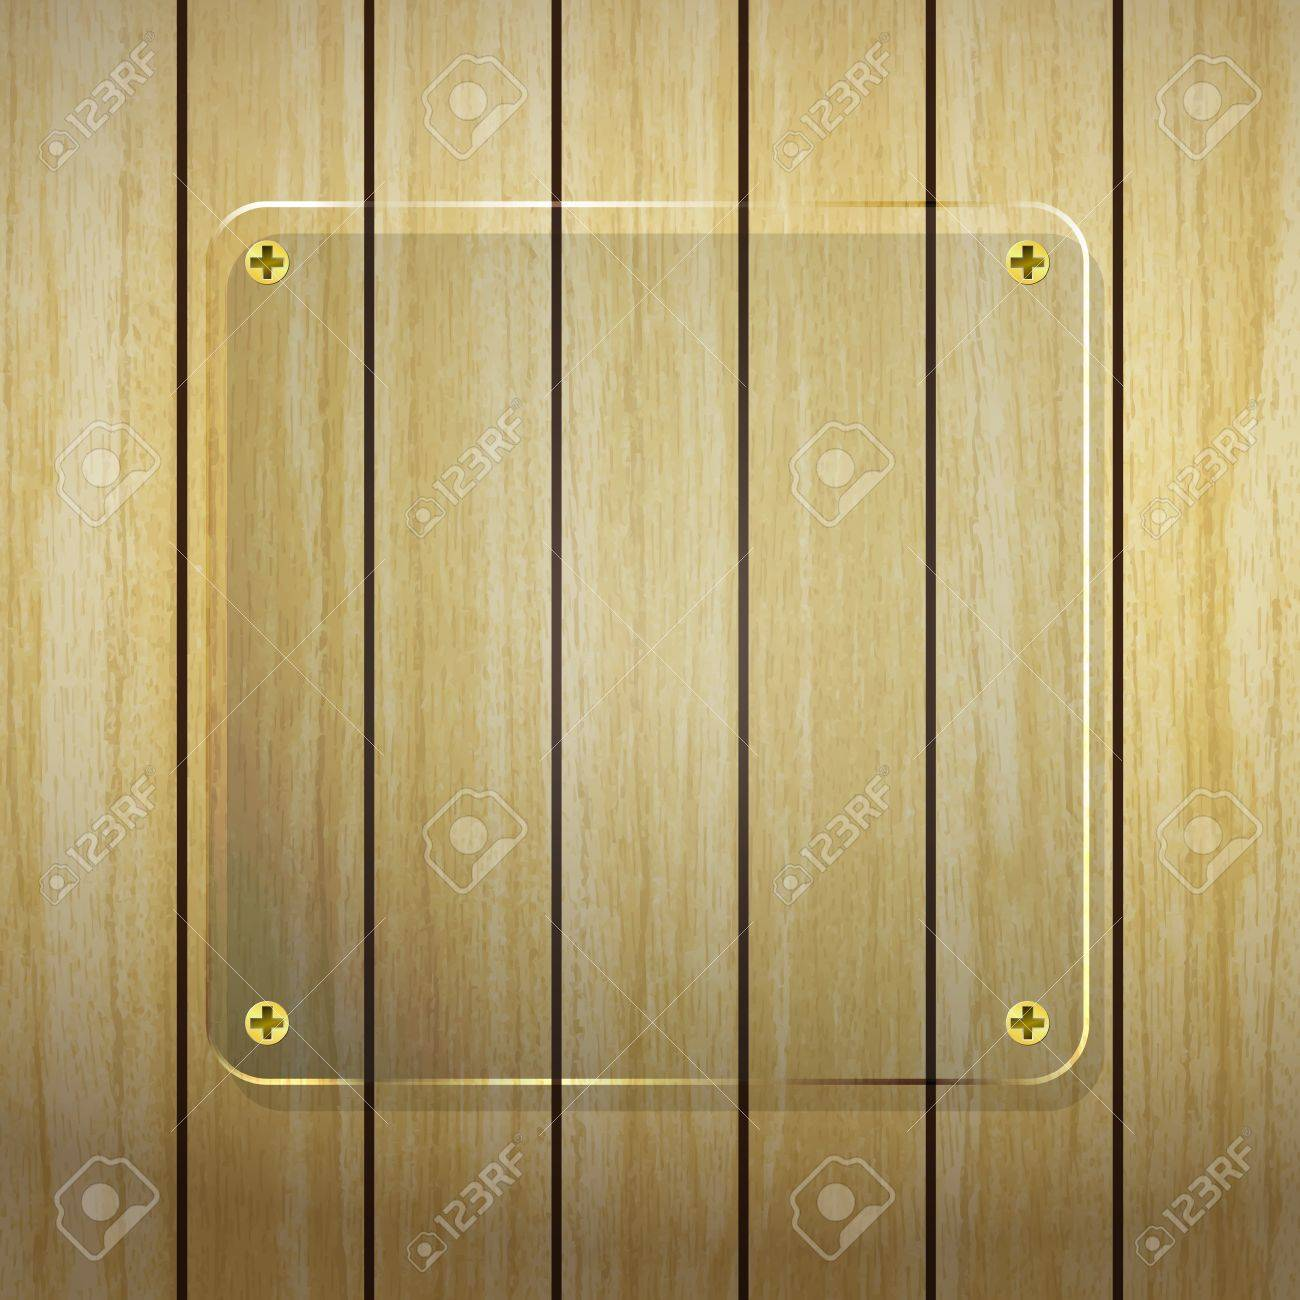 new transparent glass frame on wood planks background can use for web design Stock Vector - 18357206